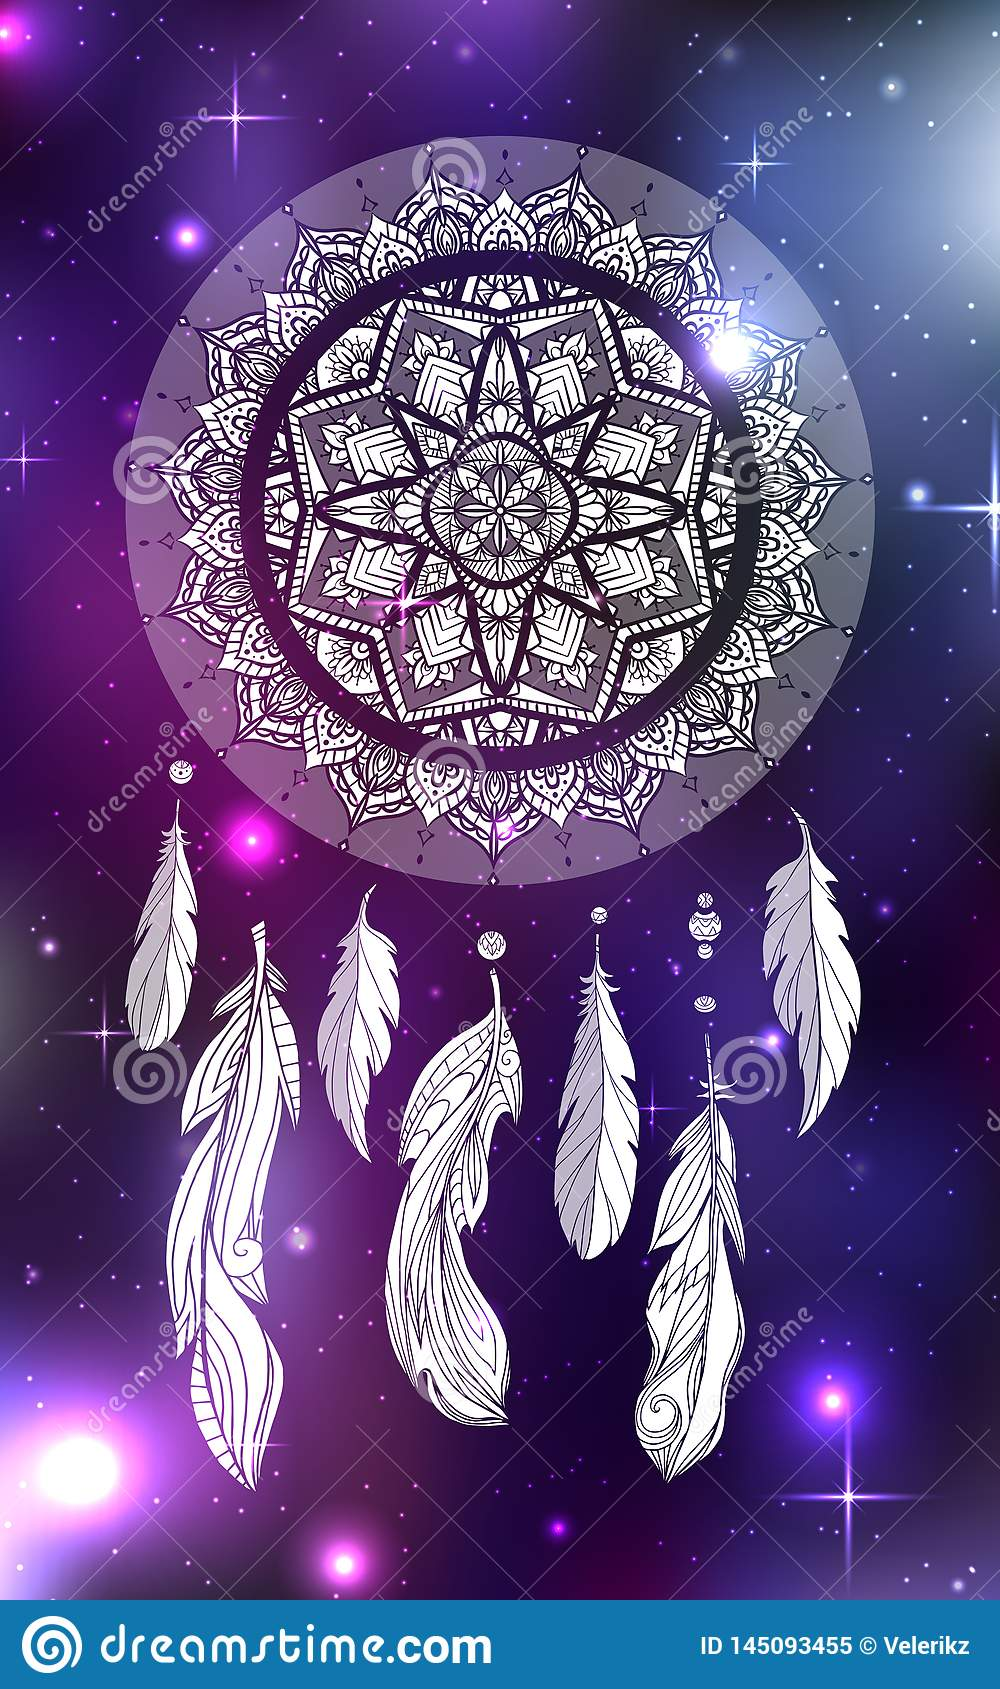 Mystical illustration of a dreamcatcher with a boho tracery pattern, feathers with beads on a cosmic background.